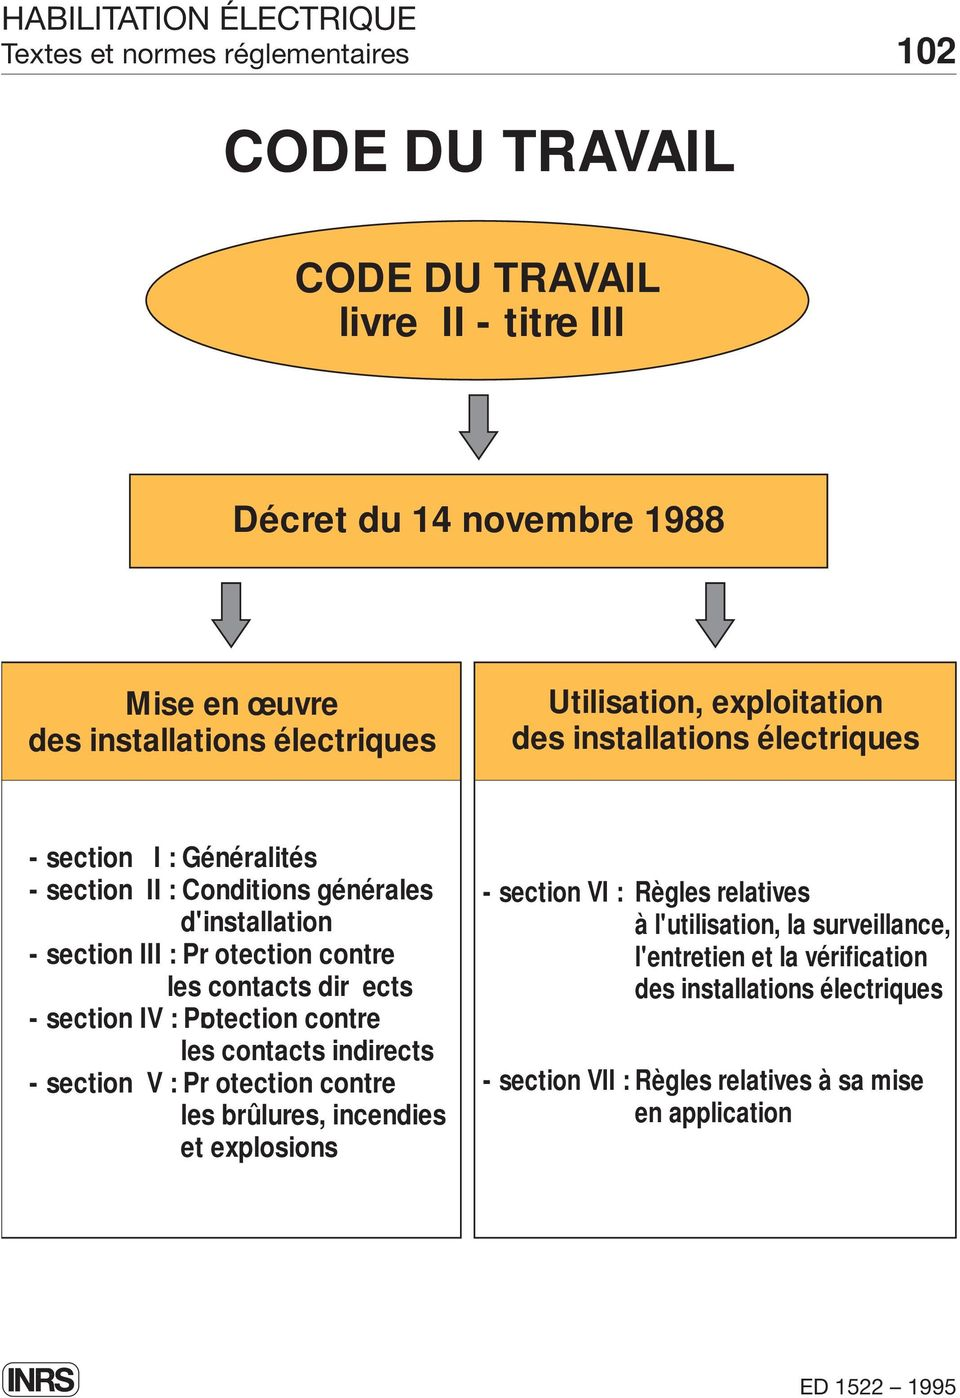 contre les contacts dir ects - section IV : Protection contre les contacts indirects - section V : Pr otection contre les brûlures, incendies et explosions -